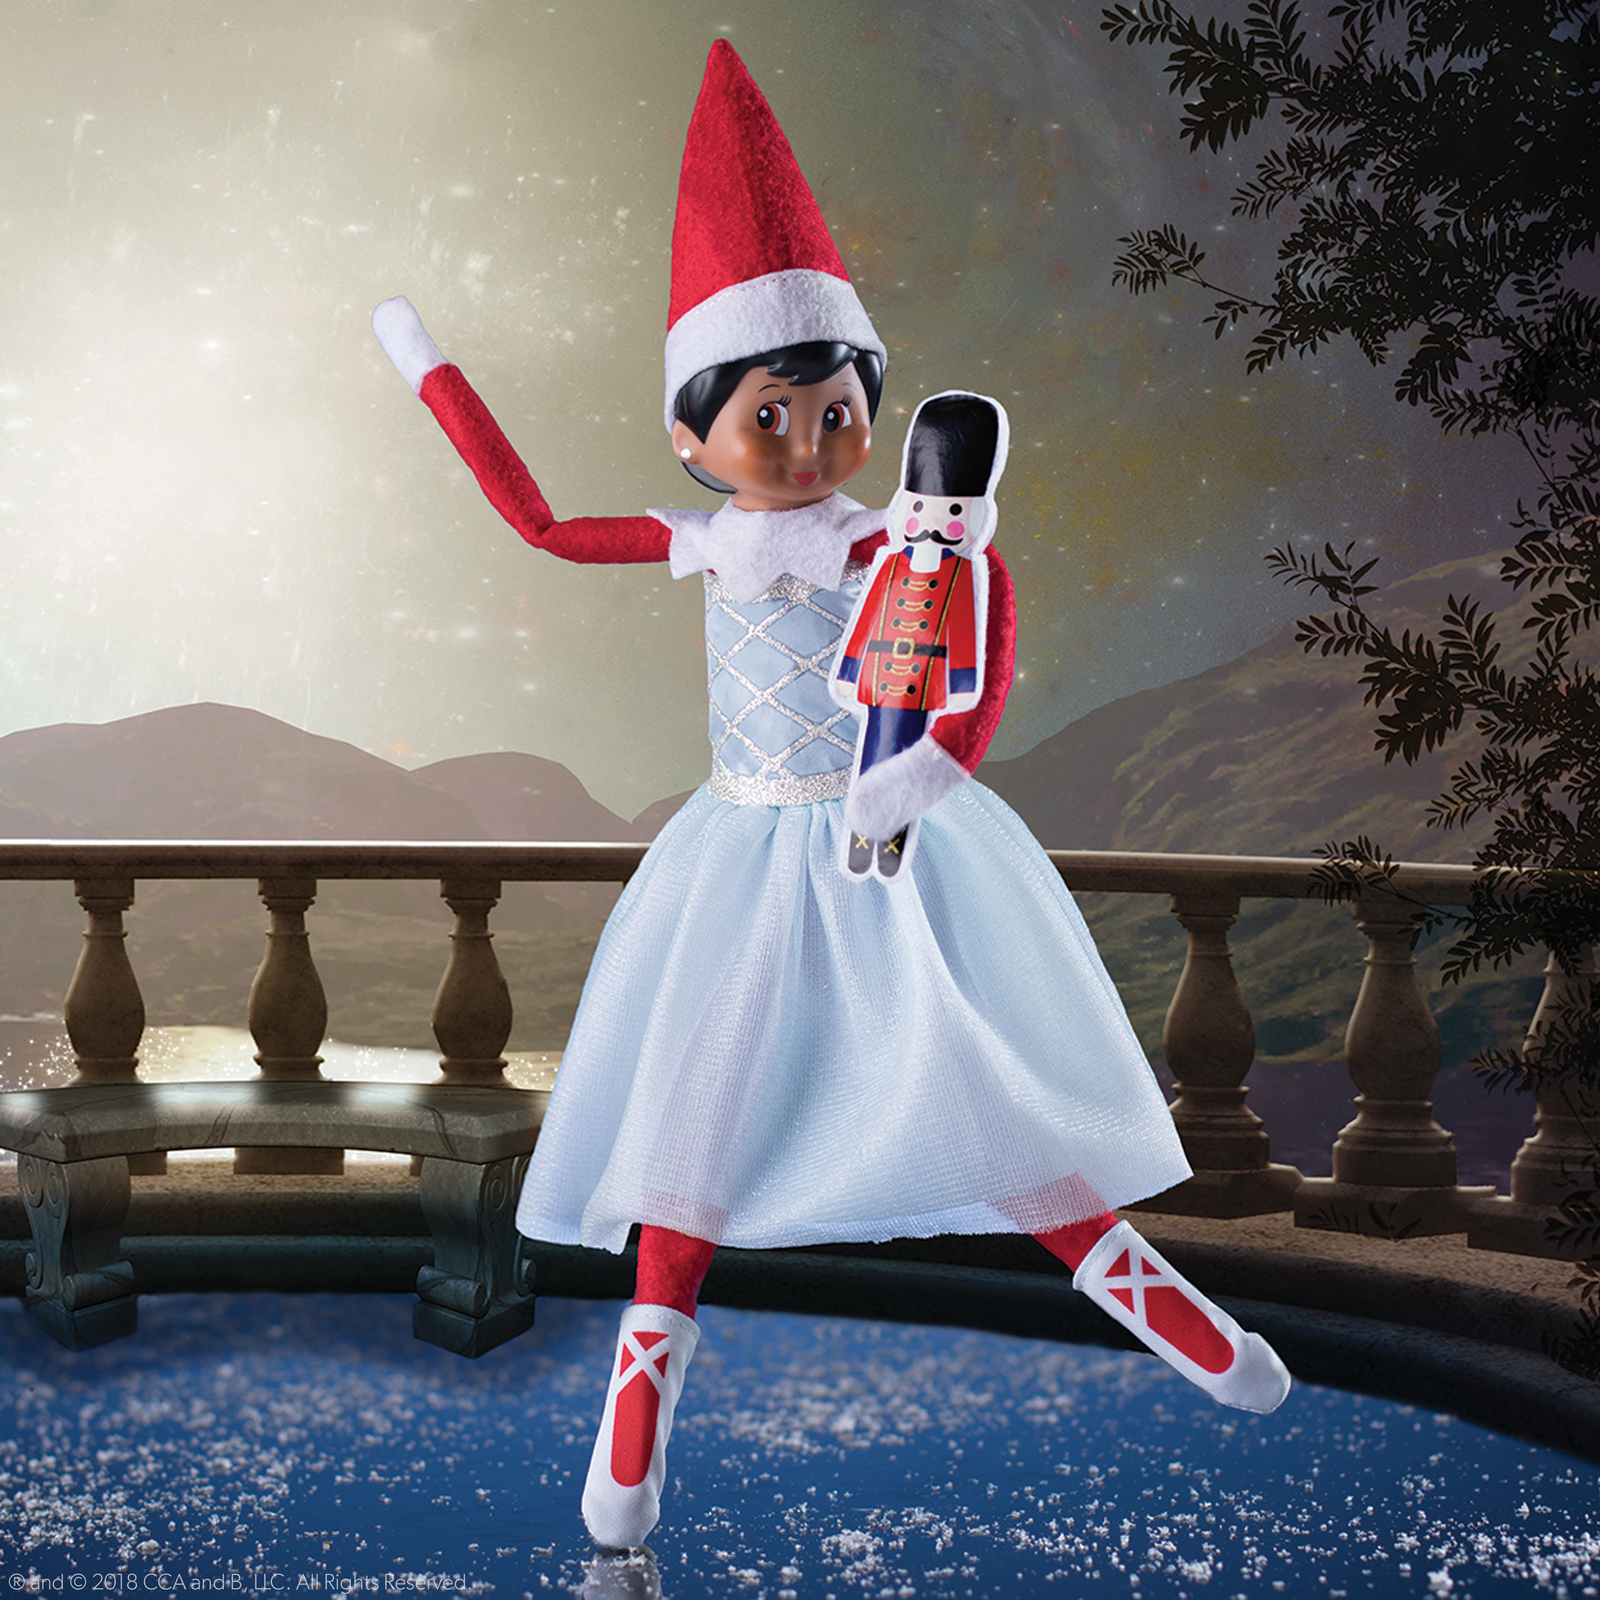 Elf on the Shelf: 2018 Couture - Snowy Sugar Plum duo image